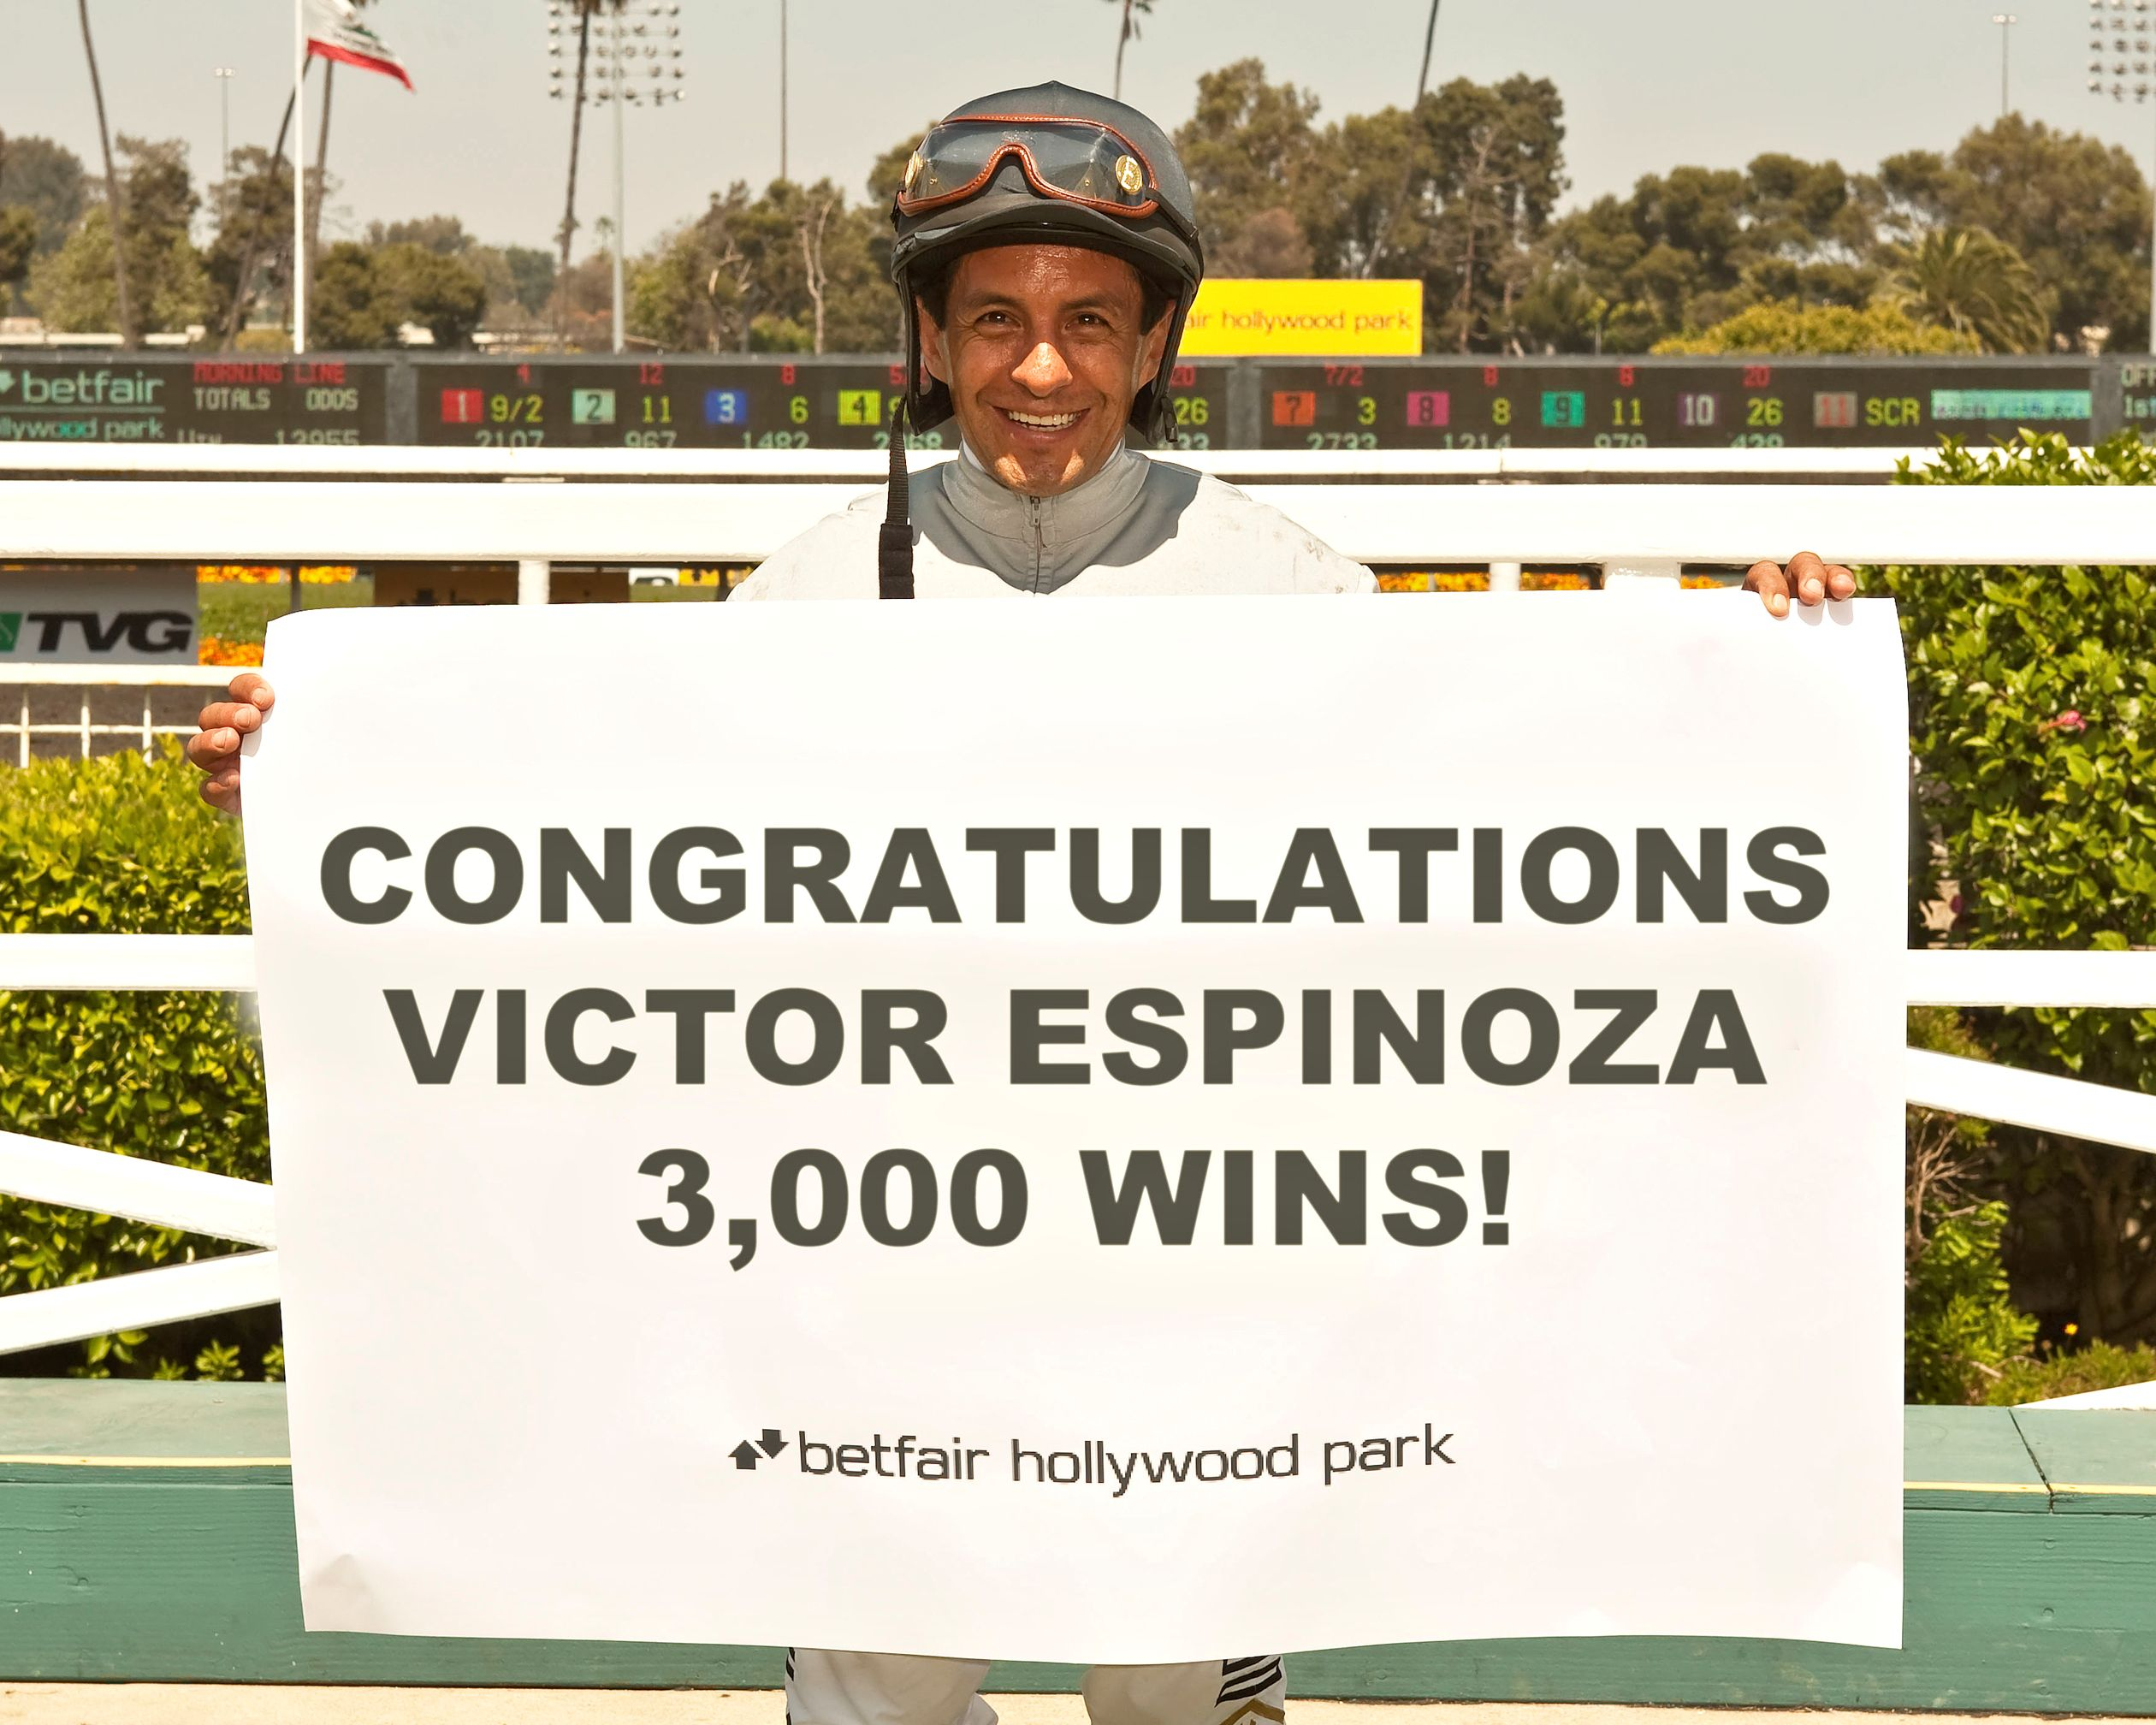 Victor Espinoza (Benoit Photo)